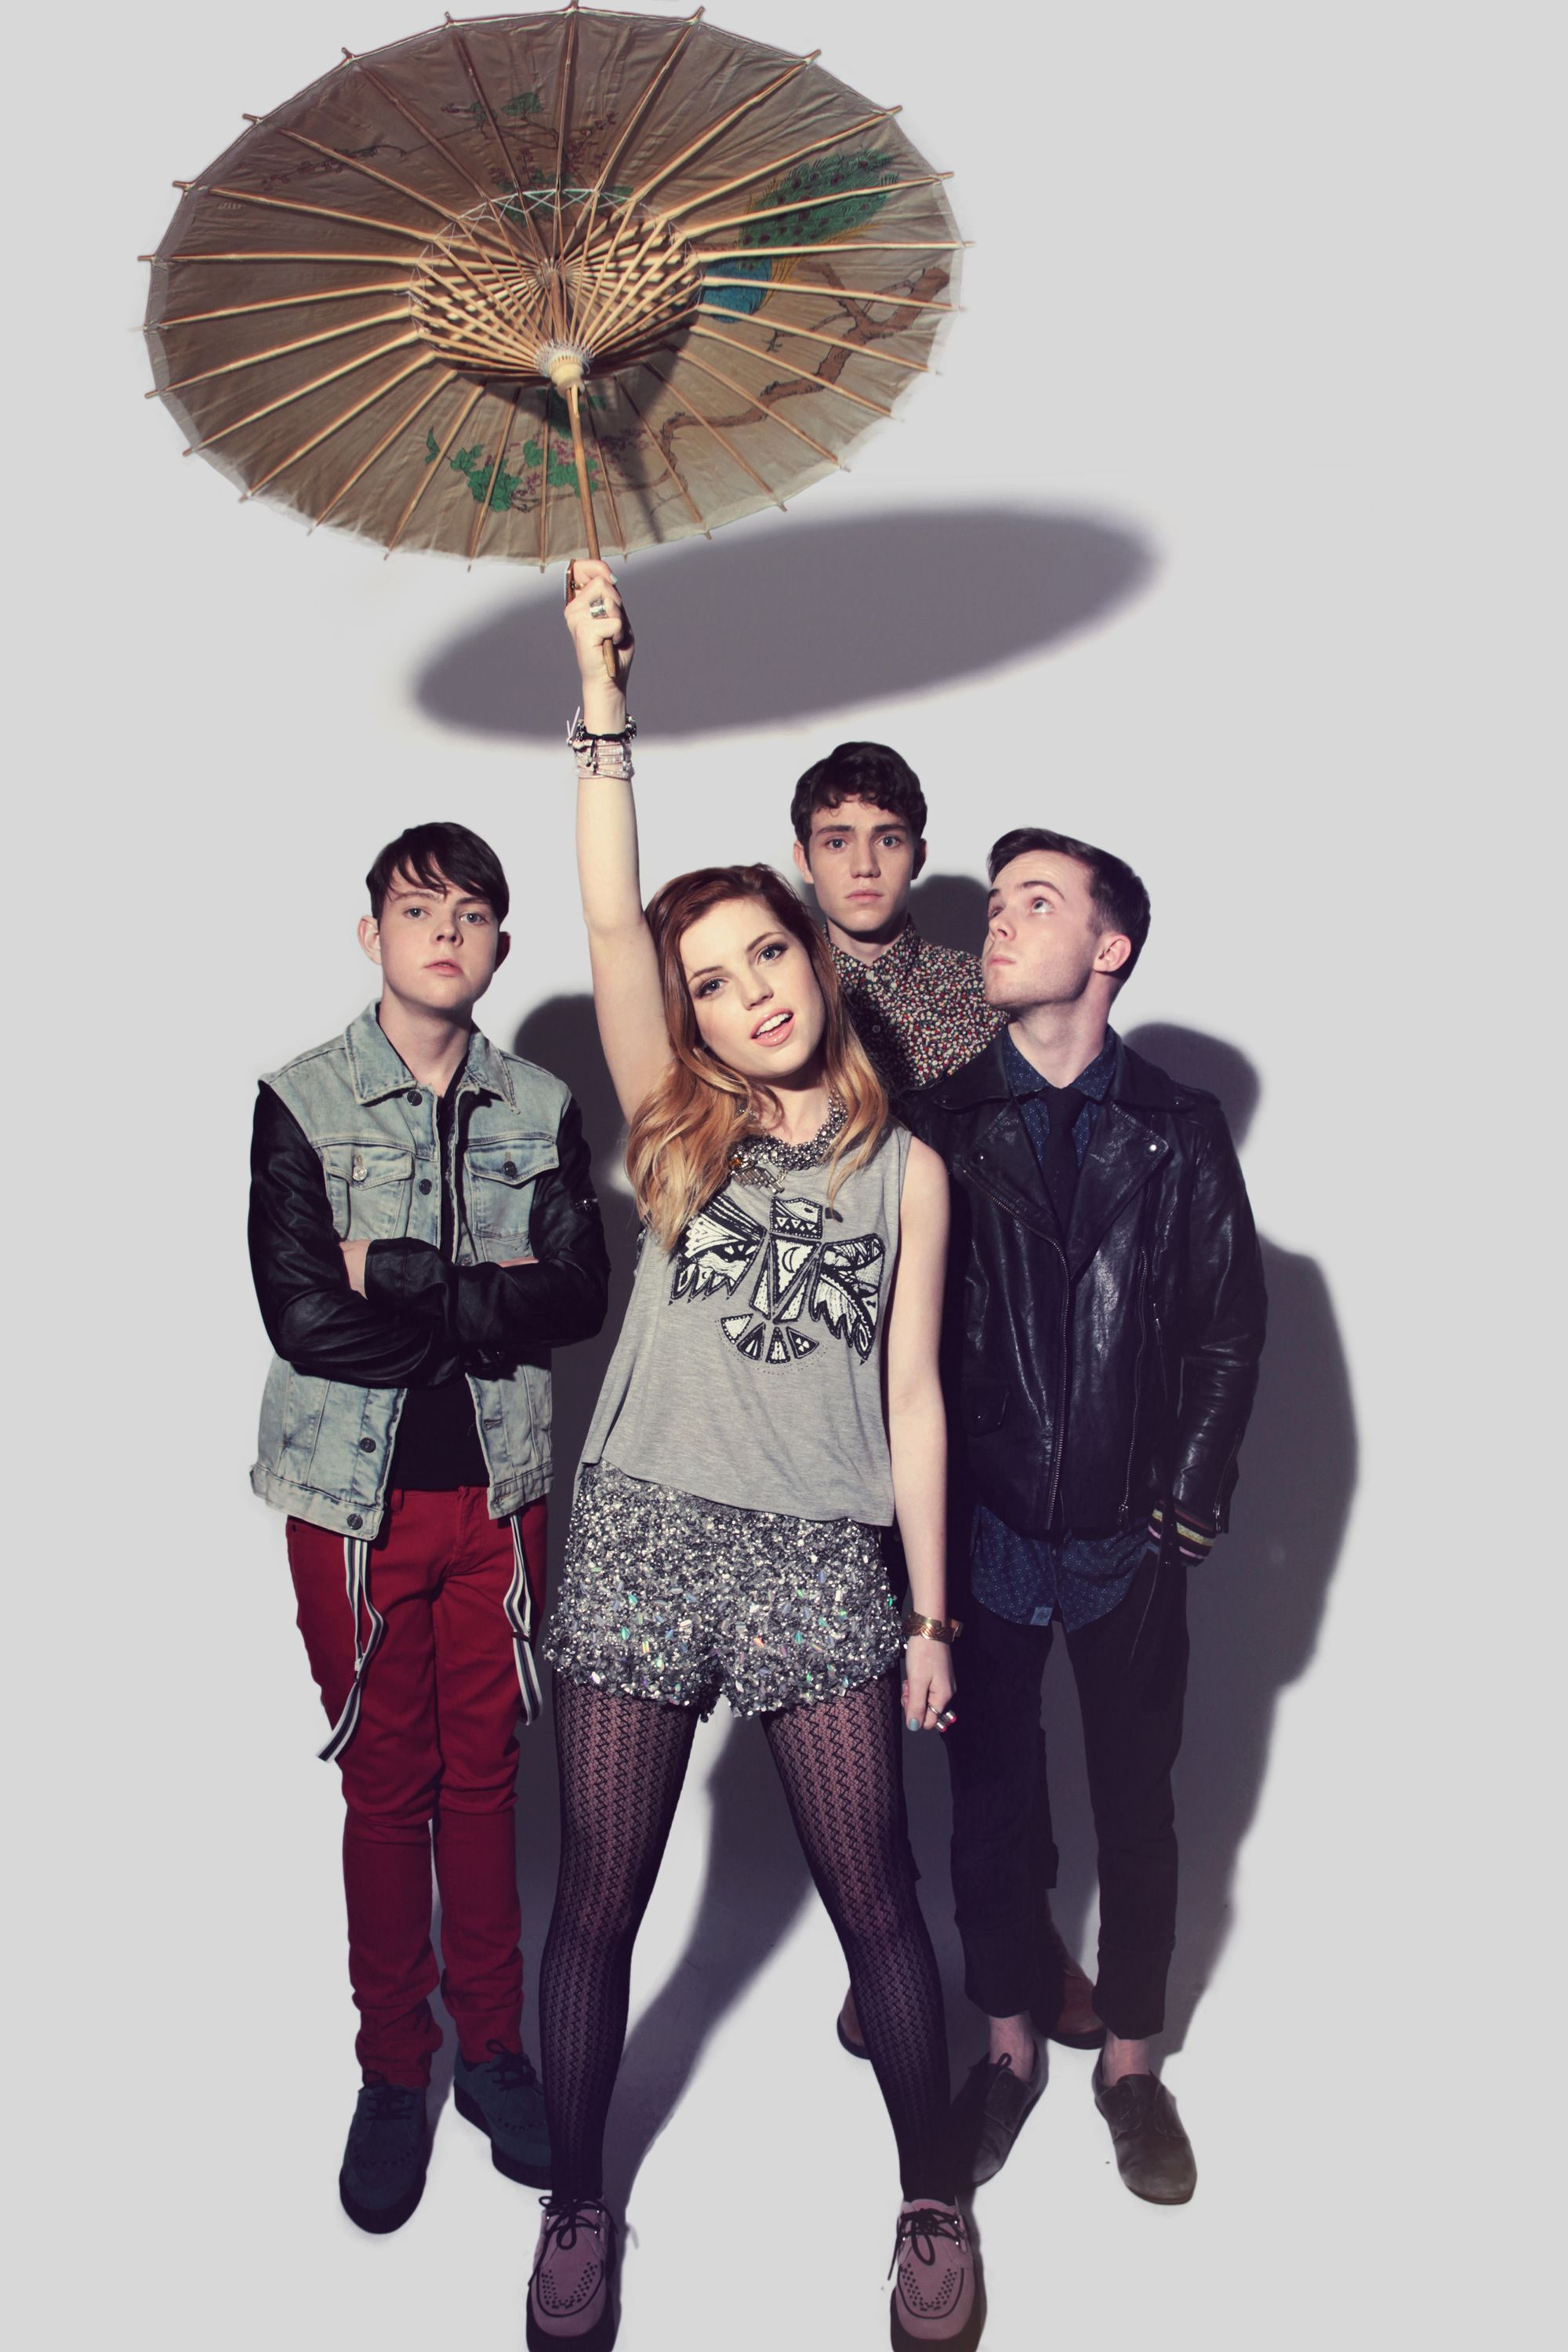 Meet indie, sibling band Echosmith: http://www.youtube.com/attribution_link?a=Nl_yFmUedJA&u=/watch%3Fv%3DFqq3DJnWmhg%26feature%3Dshare